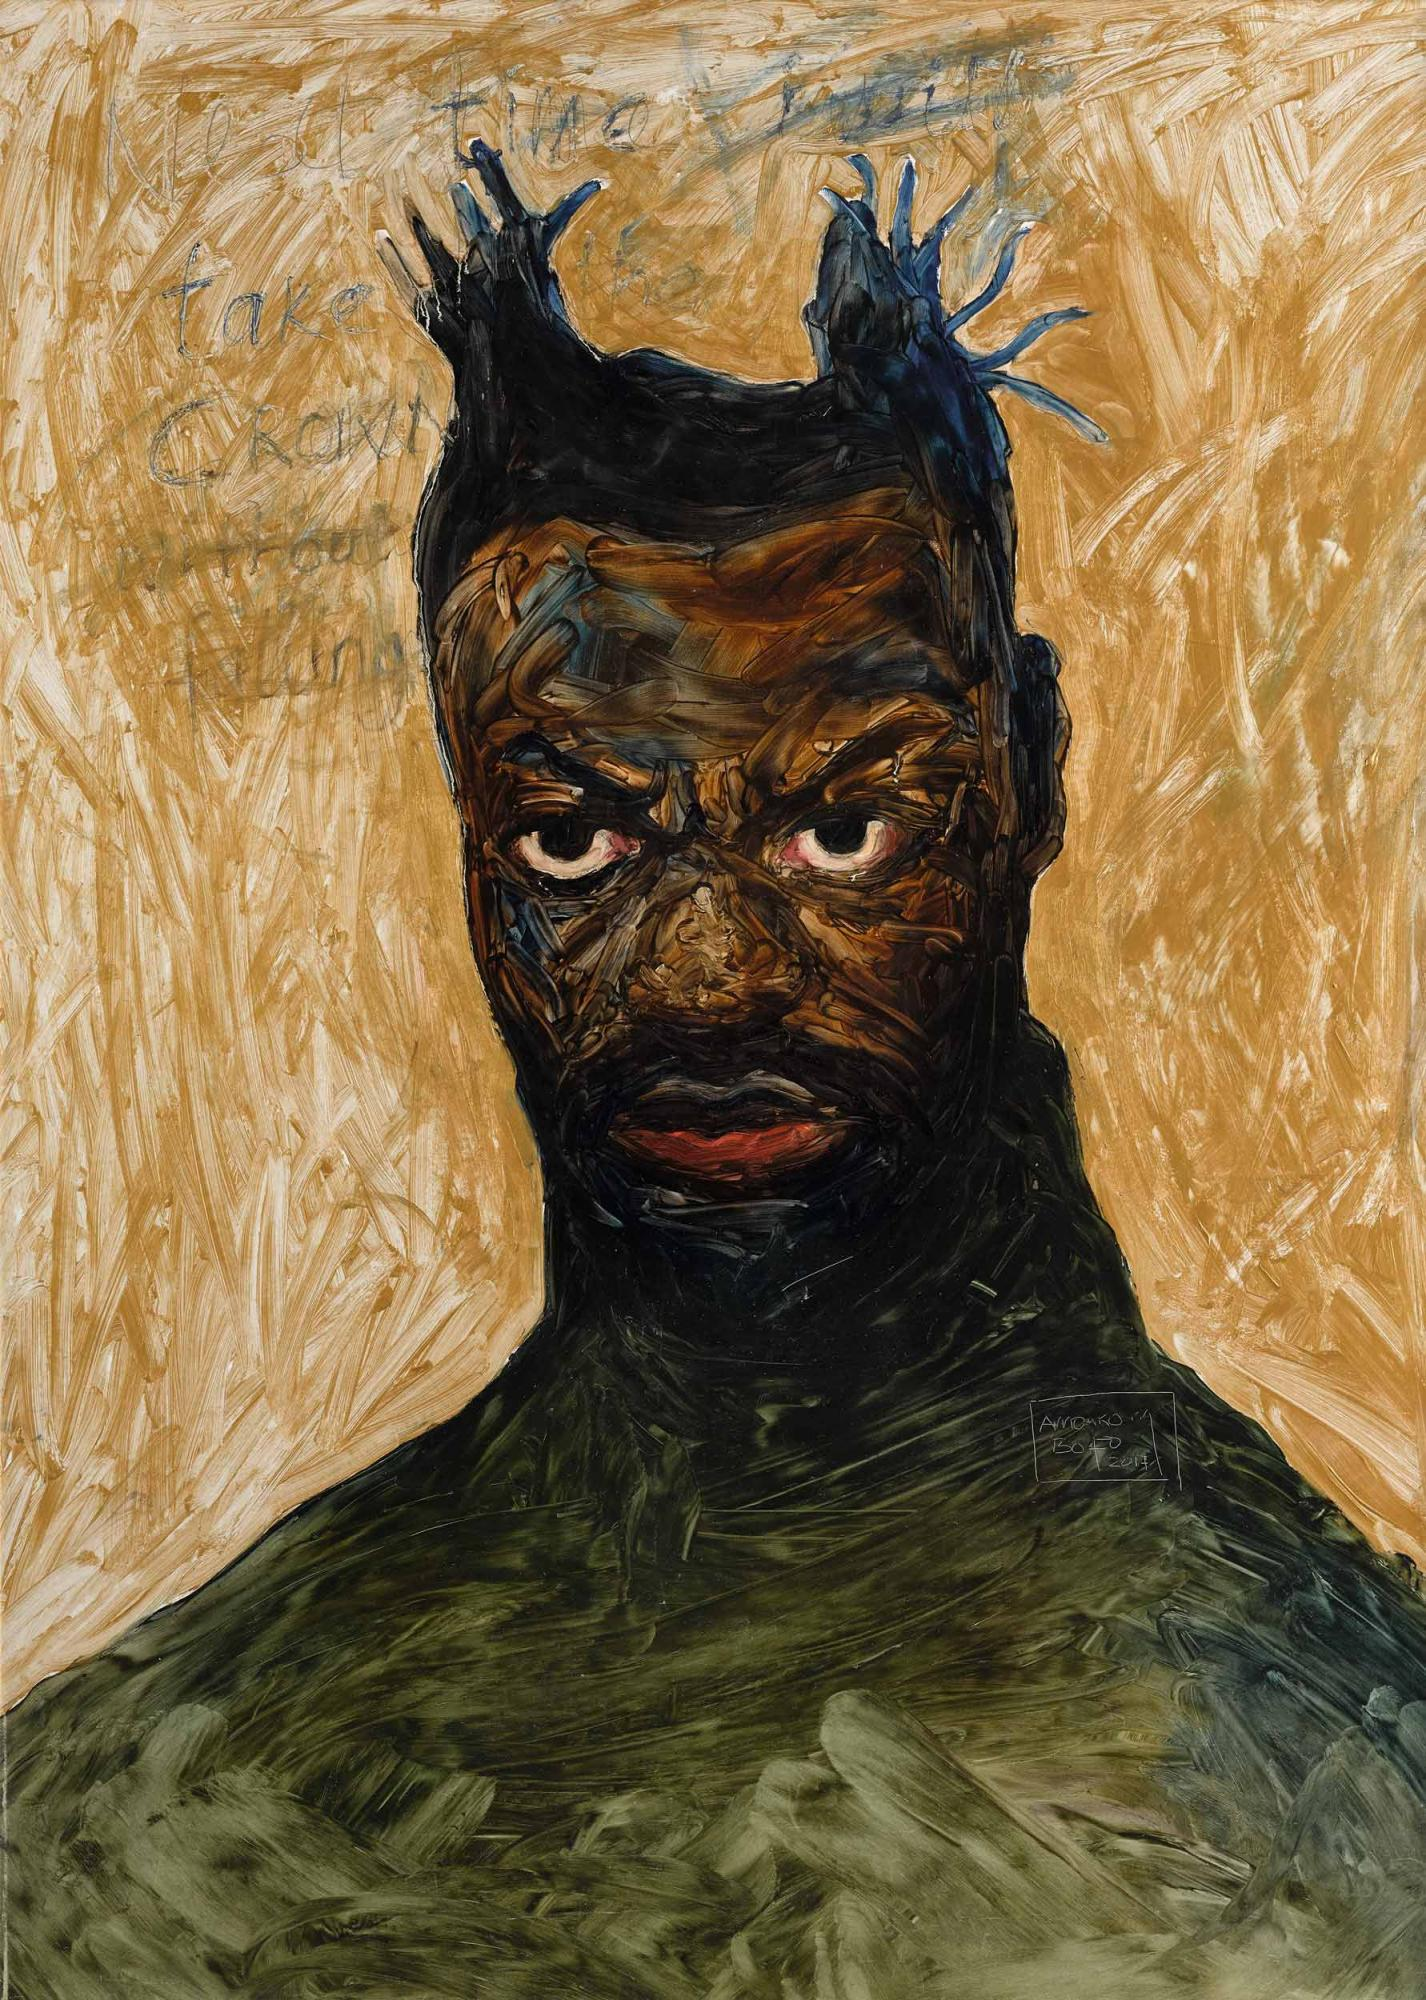 v-Lot-70-Amoako-Boafo-Self-Portrait.jpg